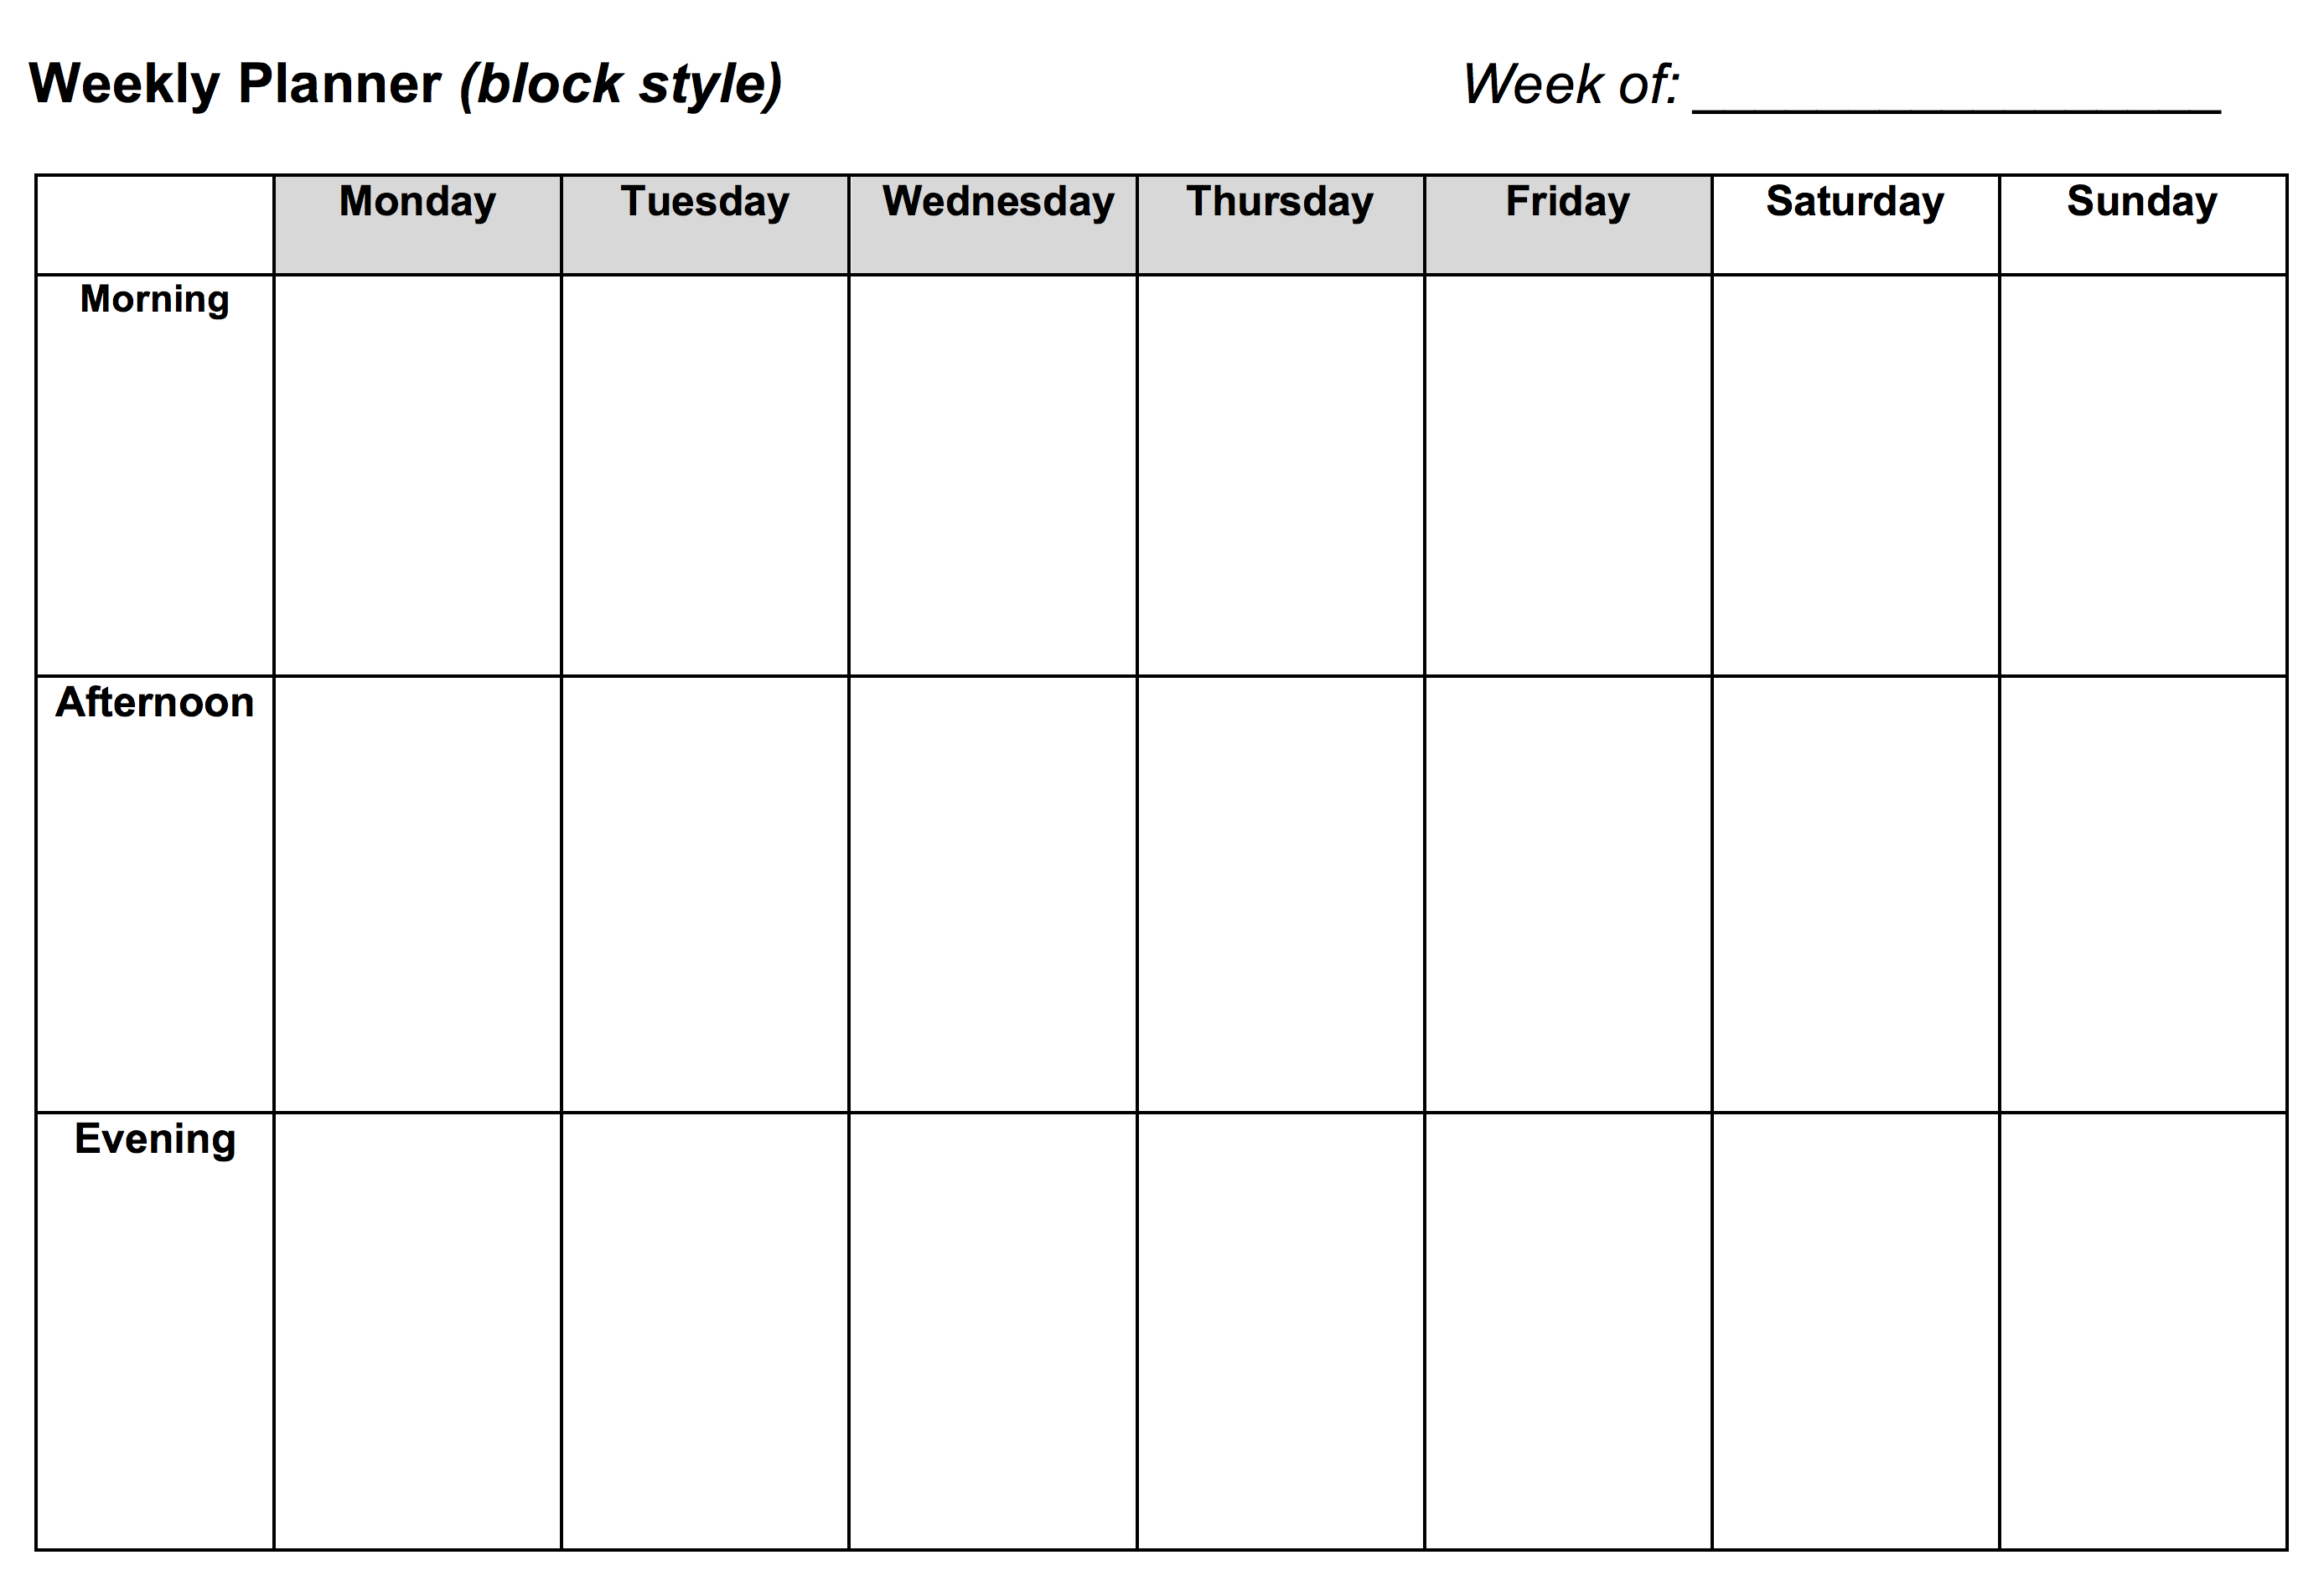 Create House Plans Weekly Planner Block Style Learning Center